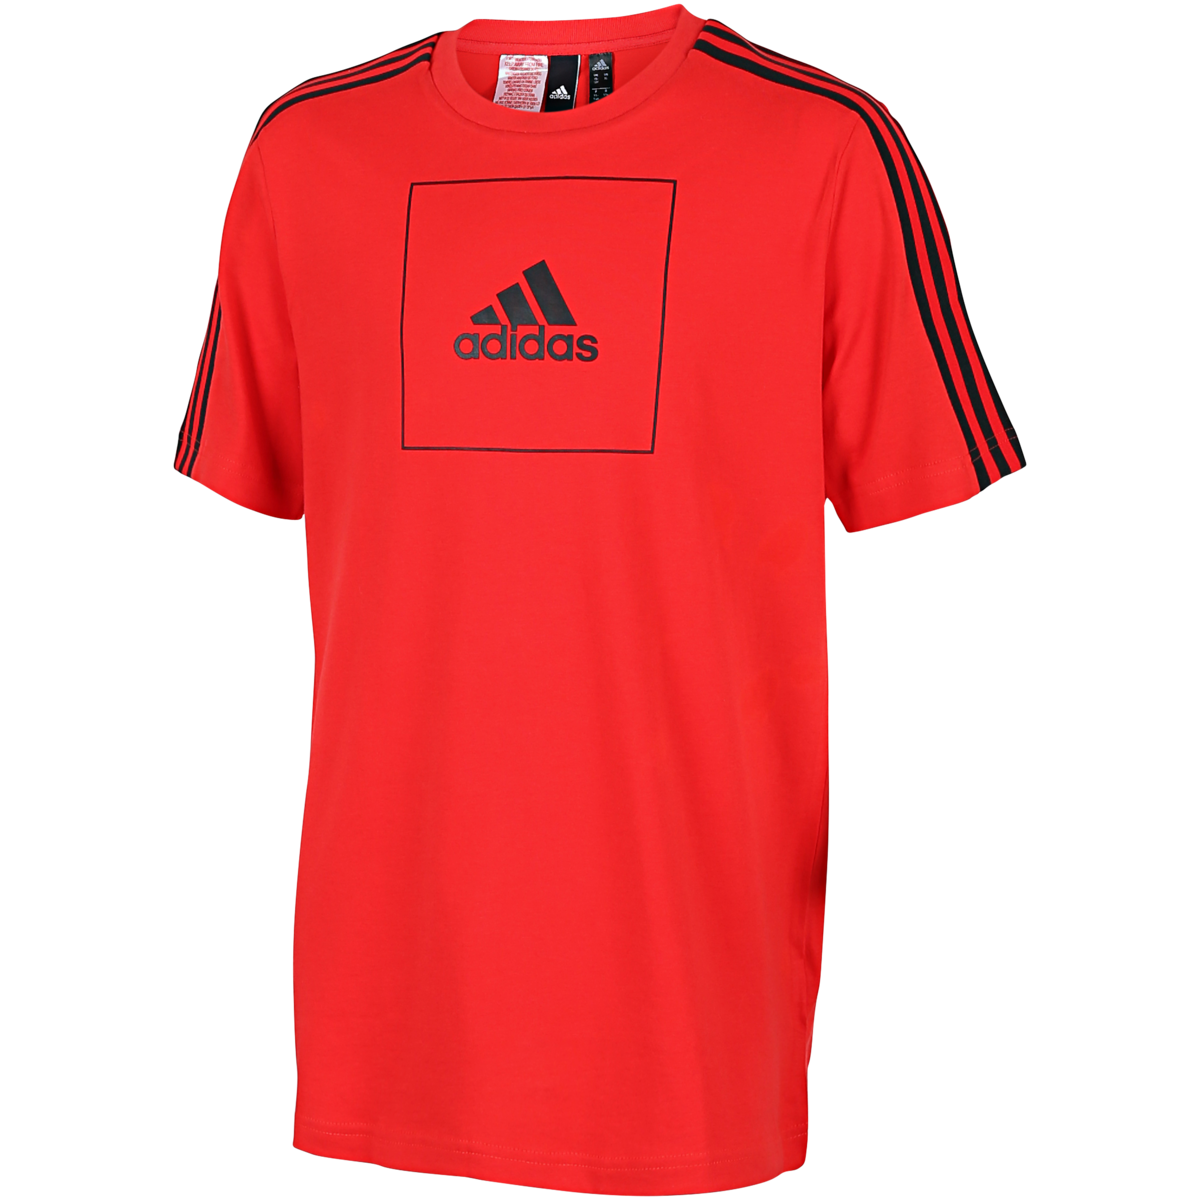 adidas - Athletics Club T-shirt - Rød